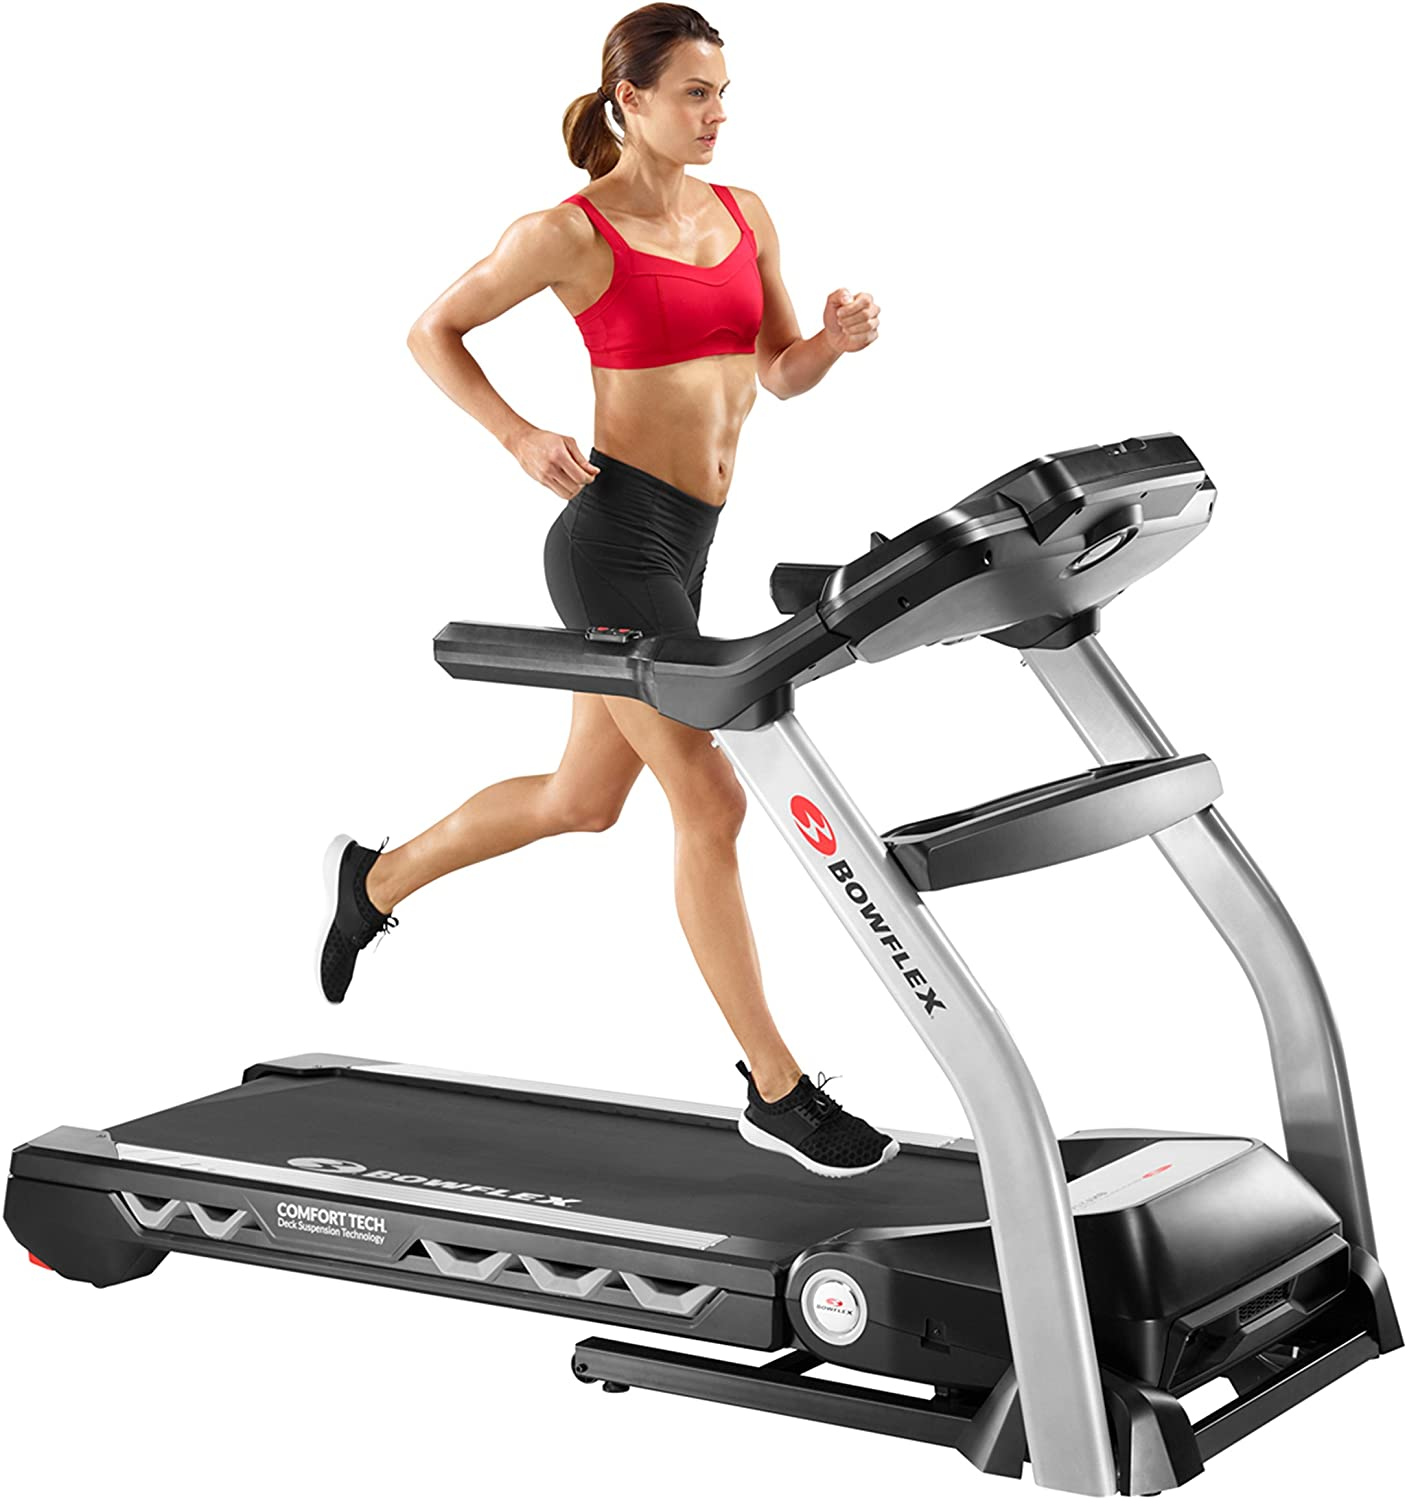 Treadmill or Exercise Bike Good for Belly Fat